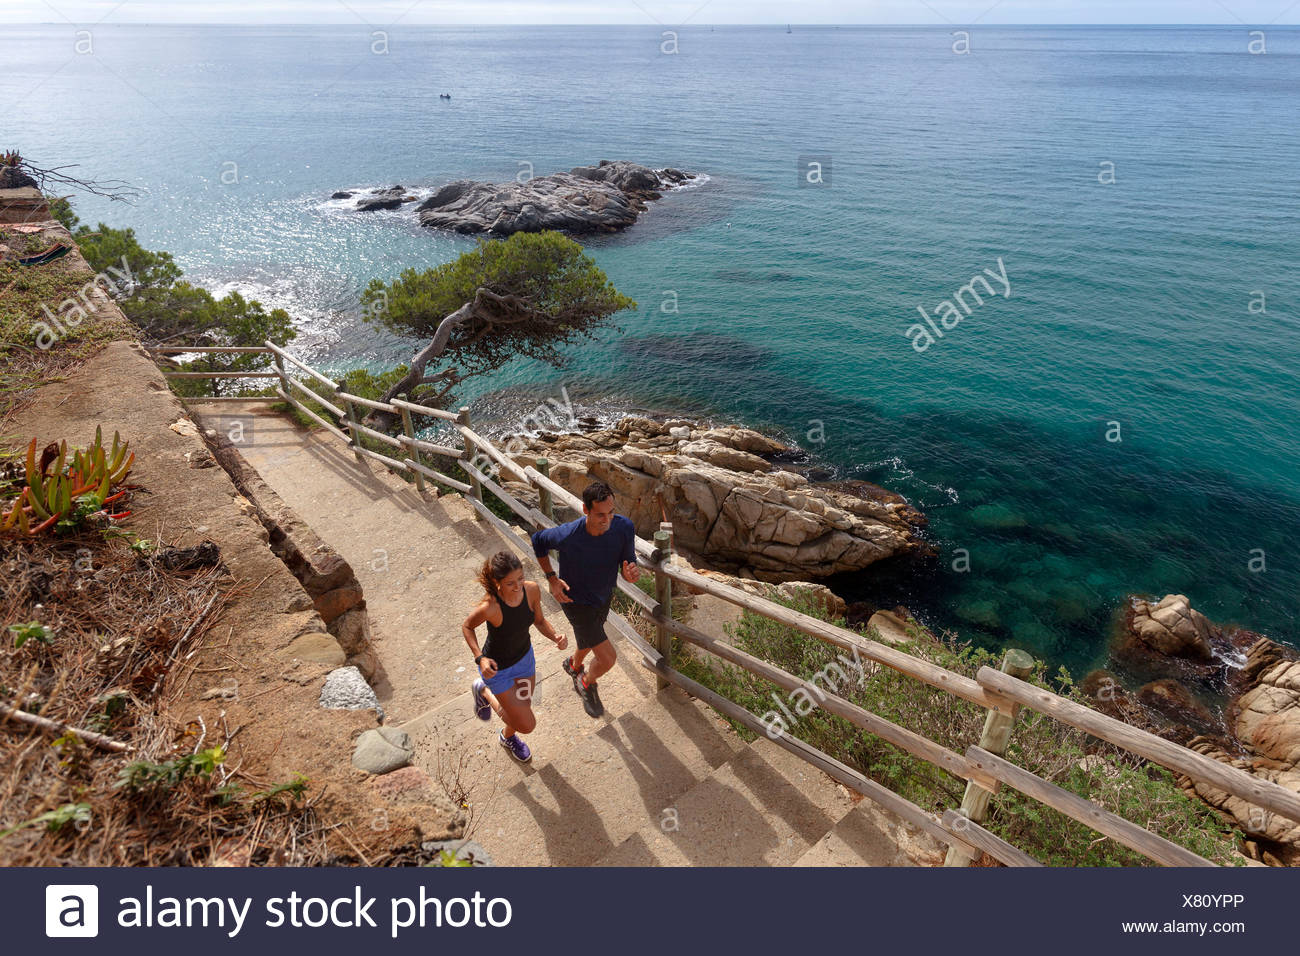 Couple running on paved steps - Stock Image